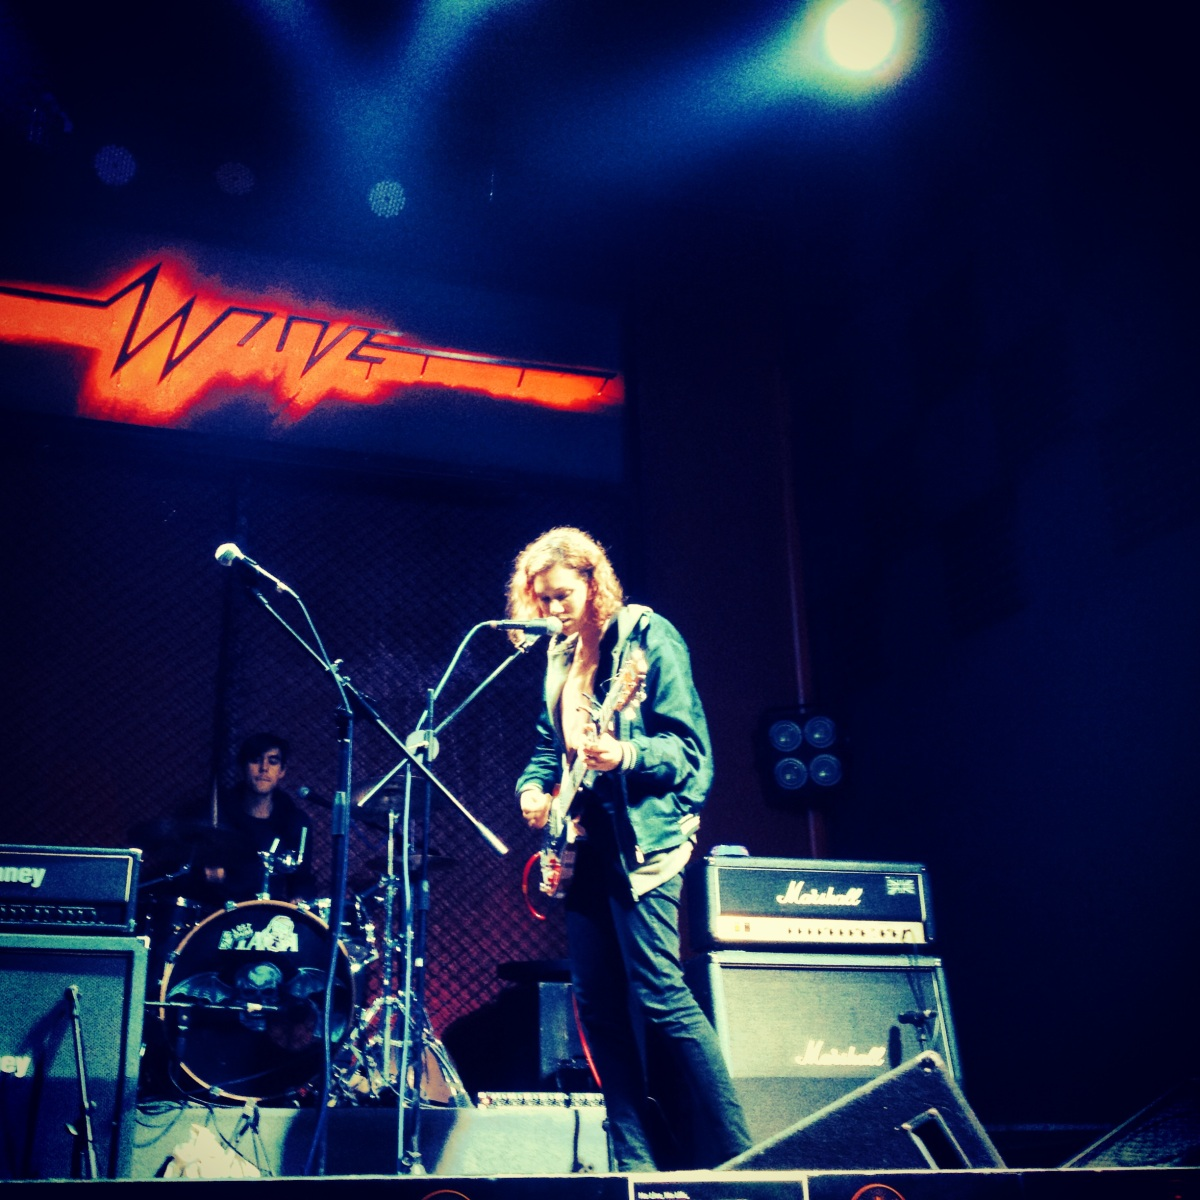 Sound checking at Wave Livehouse in Suzhou on a v. high stage